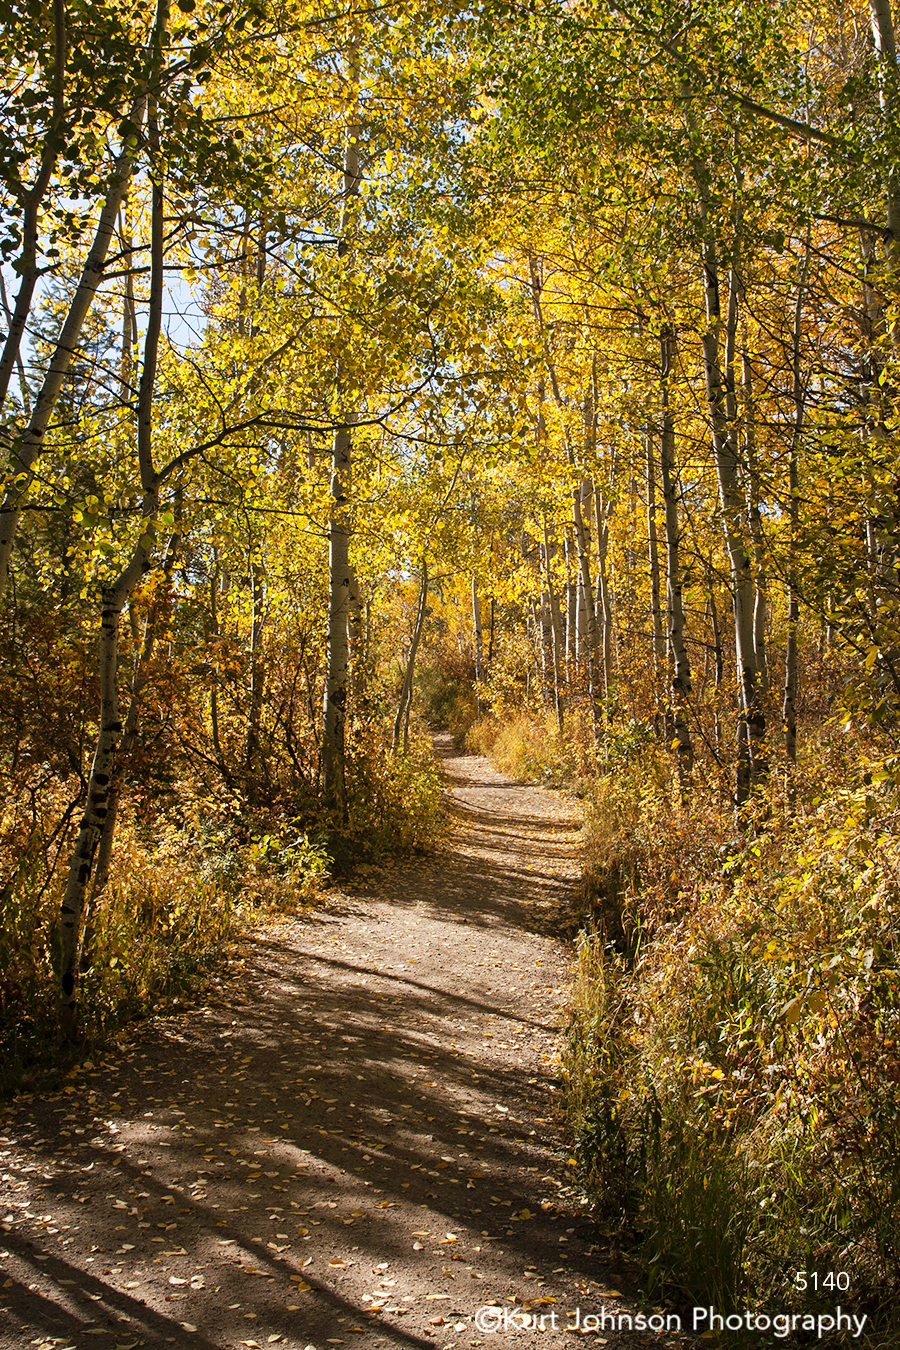 yellow tree trees autumn fall dirt path forest road landscape